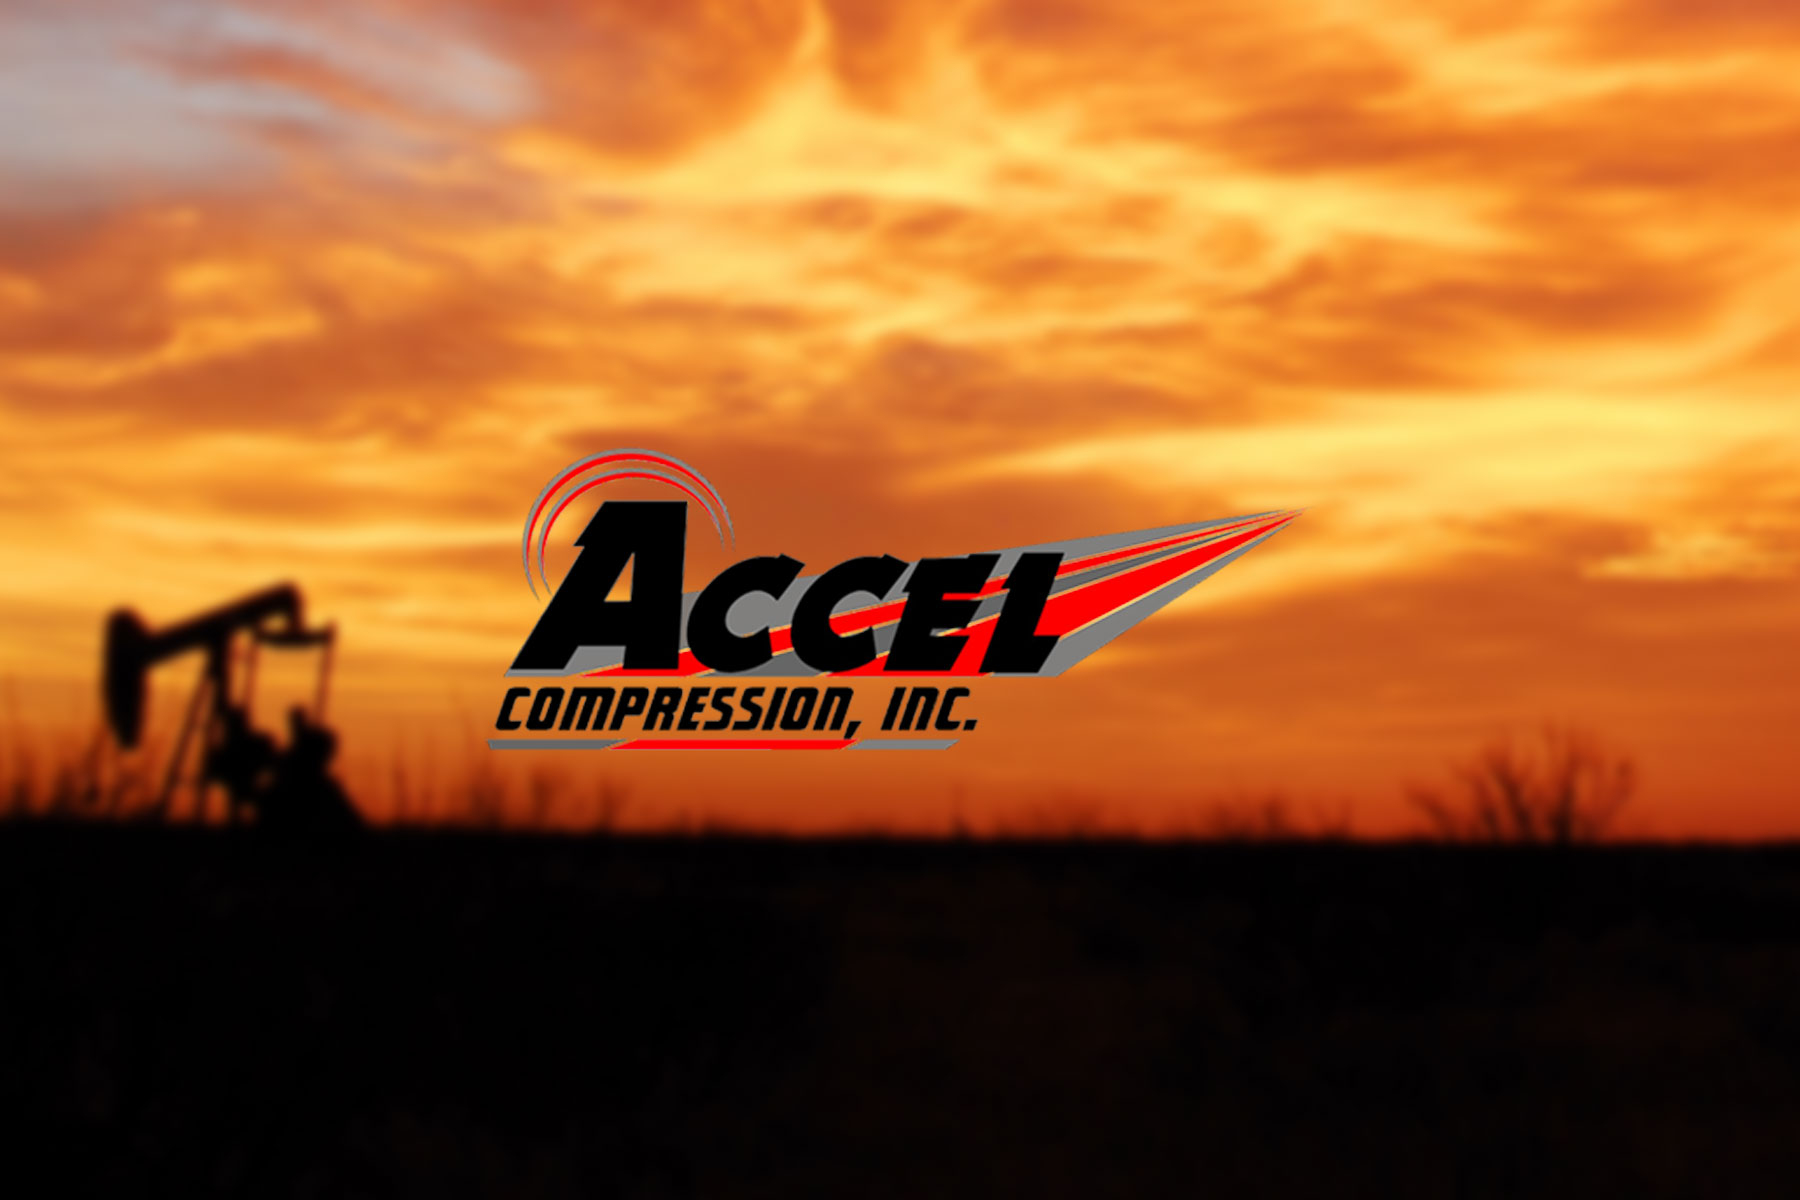 Accel Compression Inc.